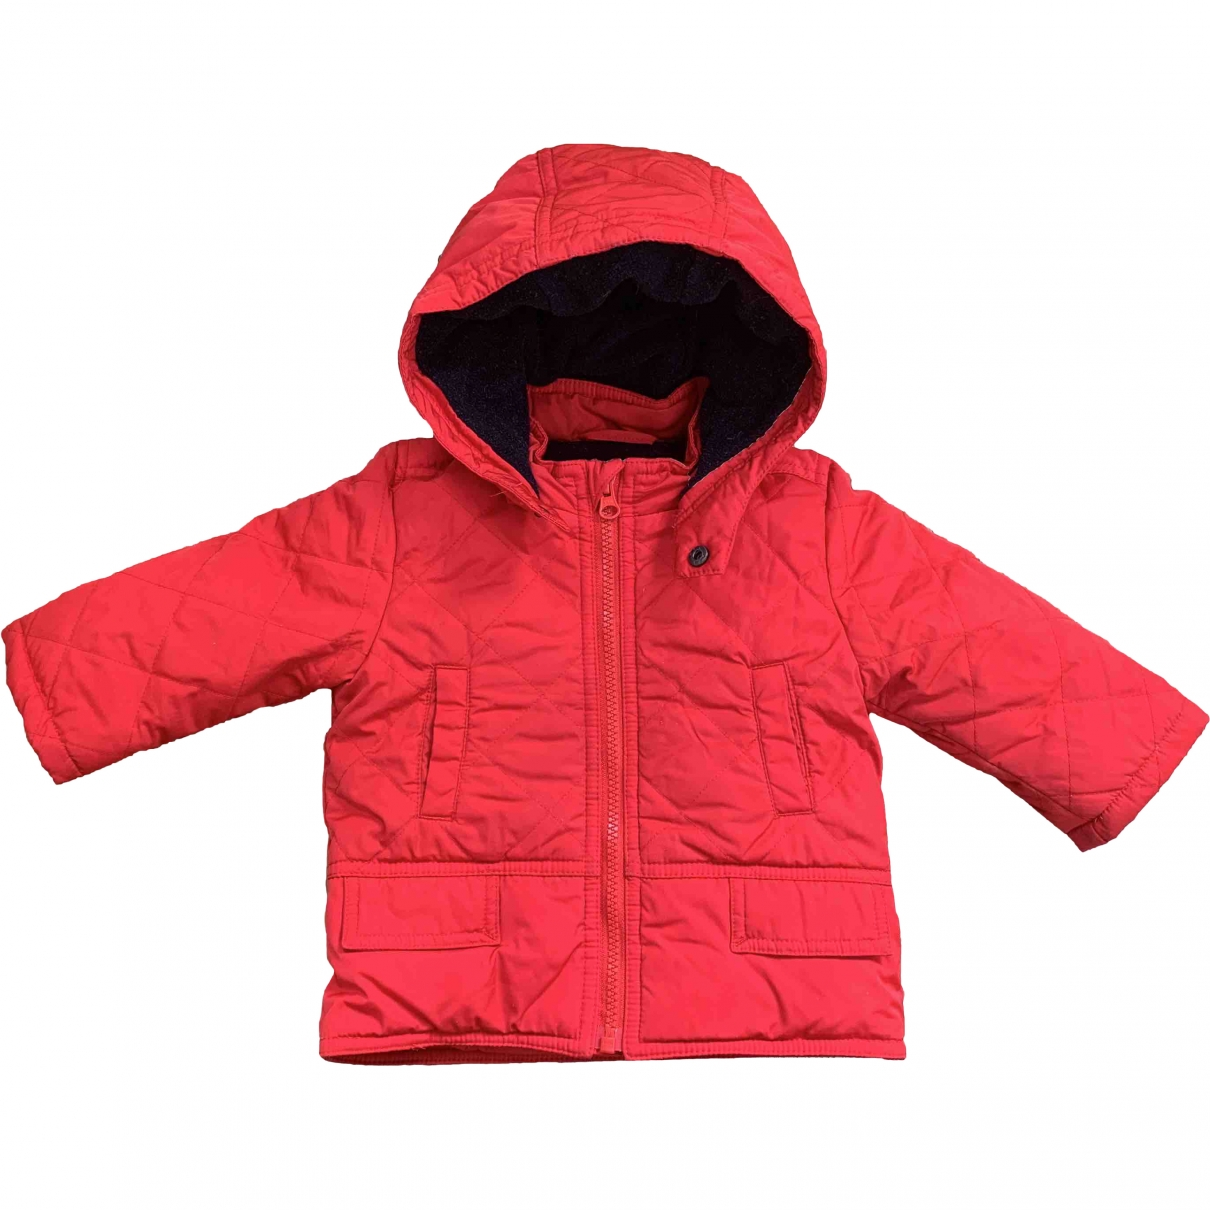 Kenzo \N Red jacket & coat for Kids 12 months - jusqu\'à 74cm FR